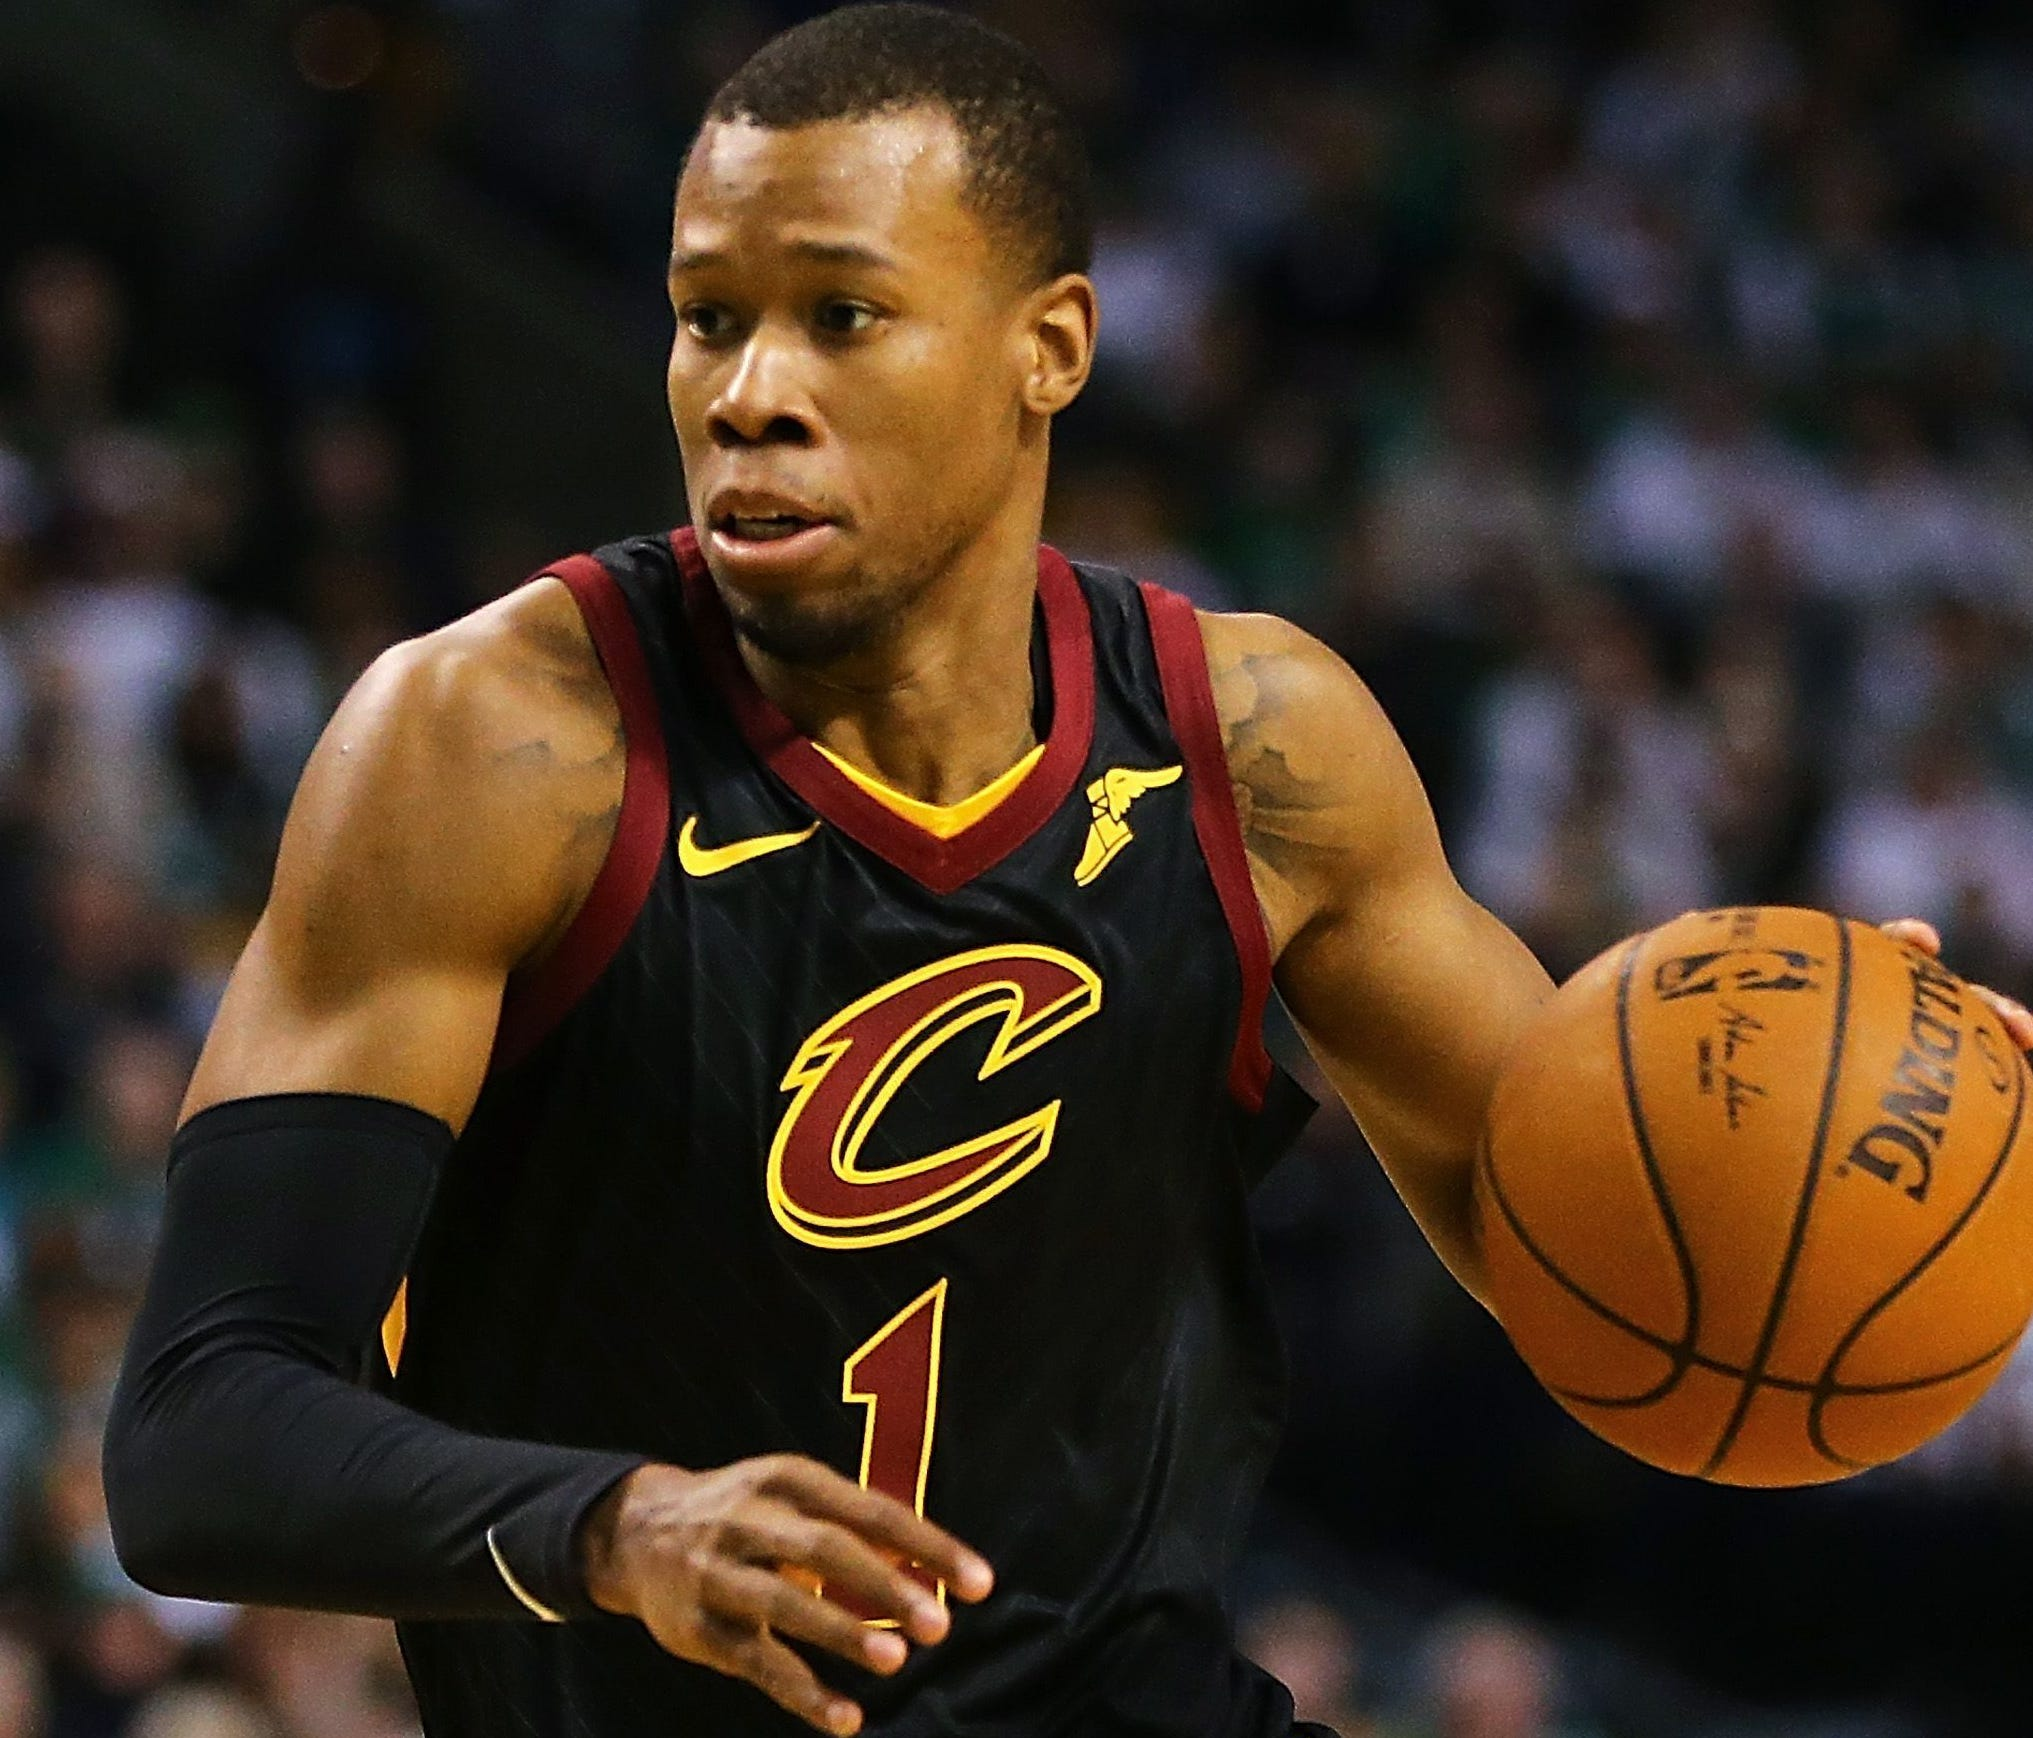 BOSTON, MA - FEBRUARY 11:  Rodney Hood #1 of the Cleveland Cavaliers dribbles during a game against the Boston Celtics at TD Garden on February 11, 2018 in Boston, Massachusetts. NOTE TO USER: User expressly acknowledges and agrees that, by downloadi